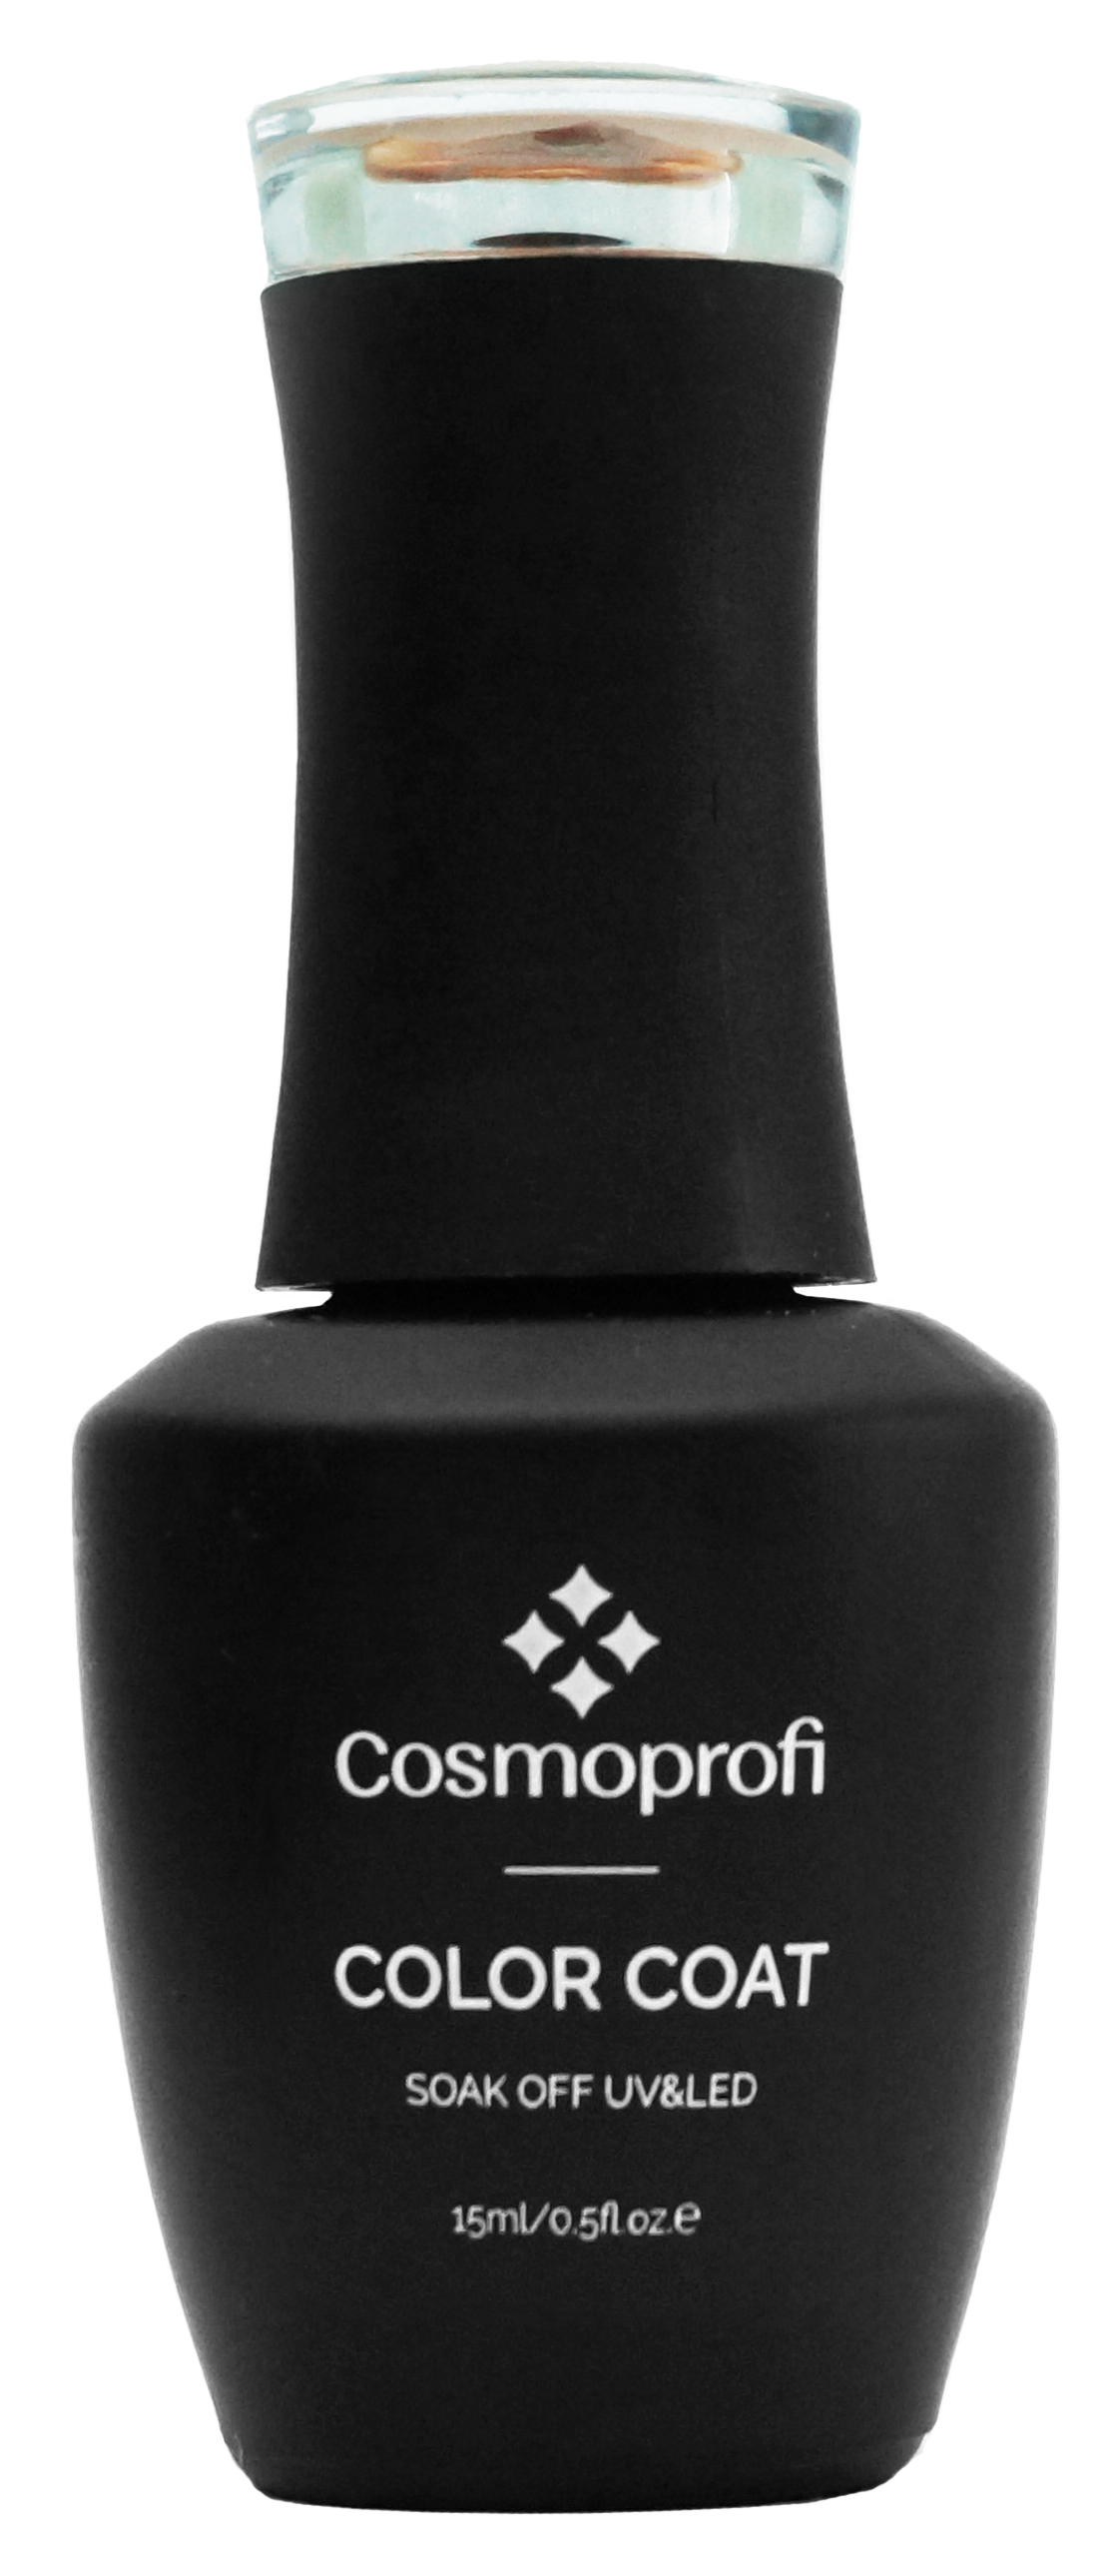 Гель-лак Cosmoprofi, Color coat № 467, 15 мл